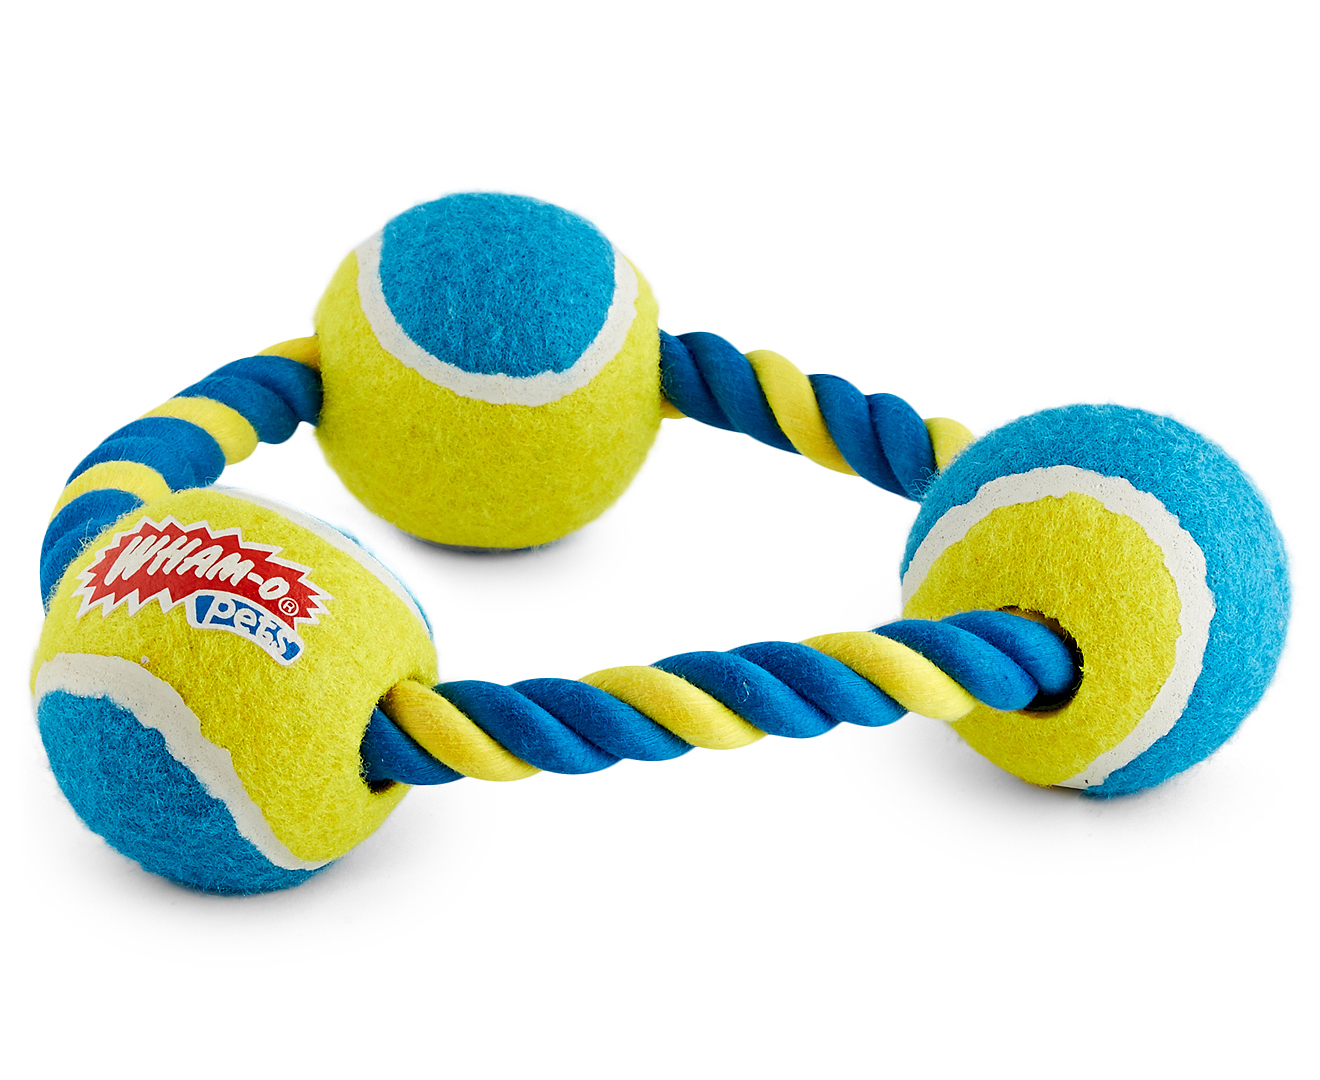 Dog Toy With Rope Connection